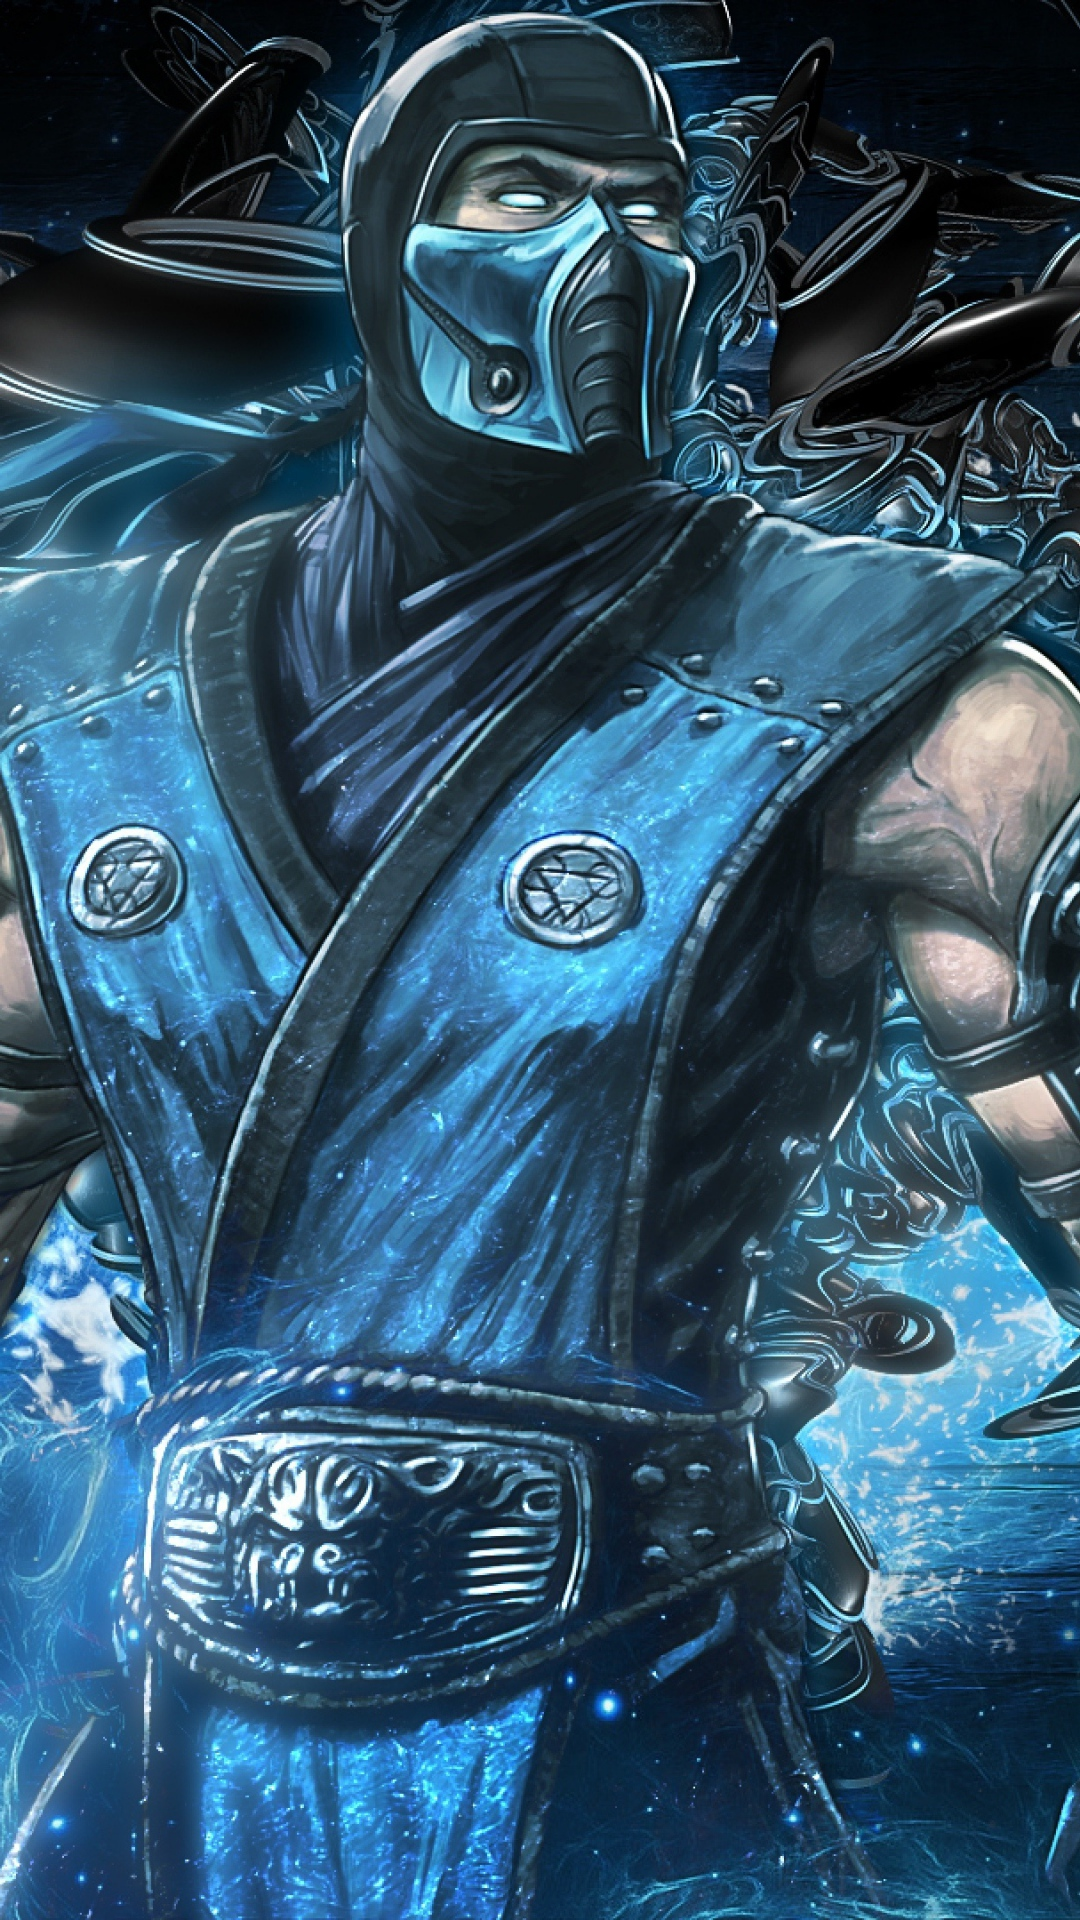 1080x1920-mortal-kombat-sub-zero-art-equipment-wallpaper-wp340621